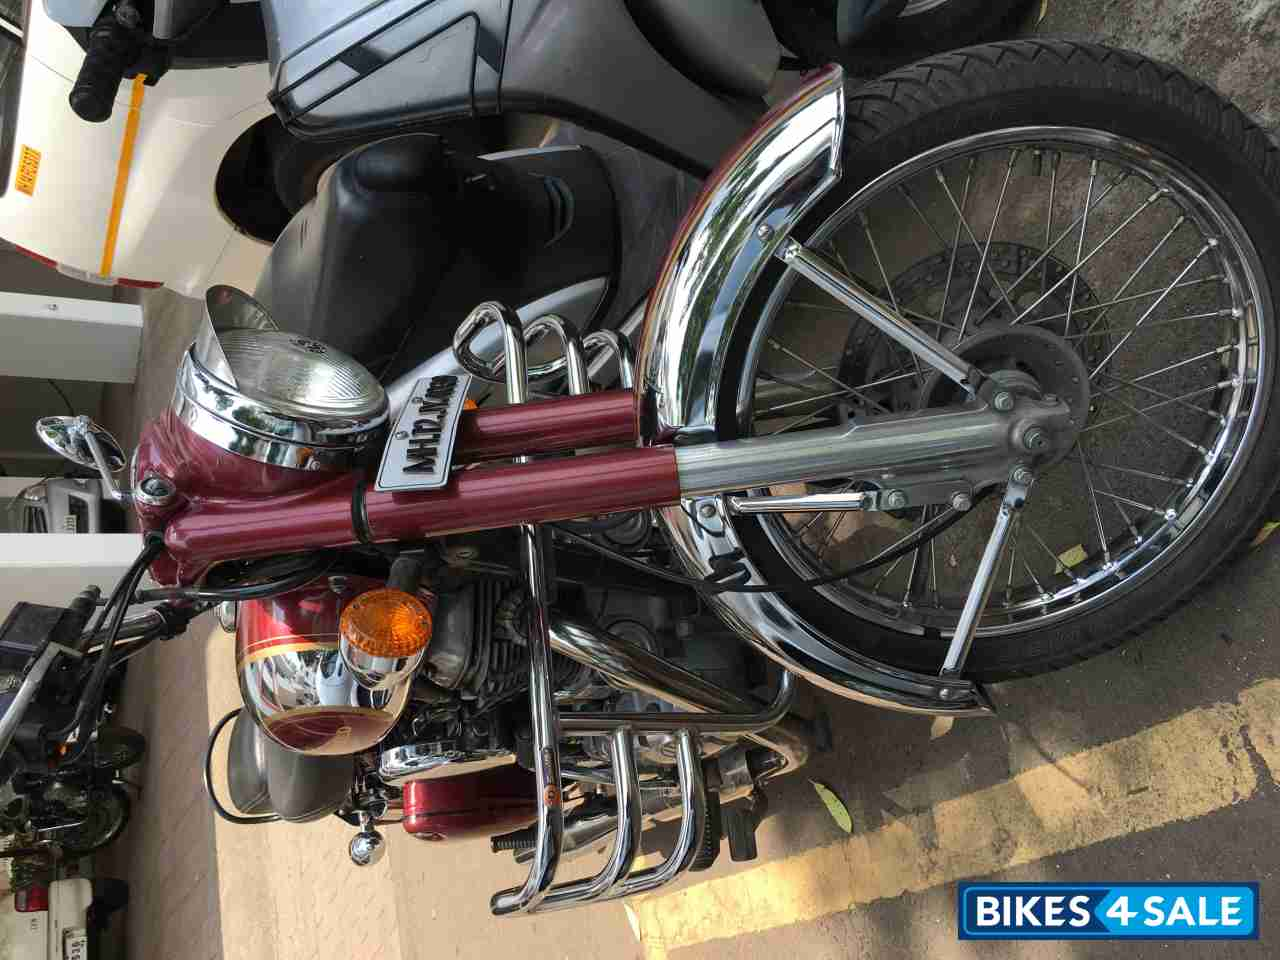 Royal Maroon Royal Enfield Classic Chrome Picture 1 Bike Id 129704 Bike Located In Pune Bikes4sale